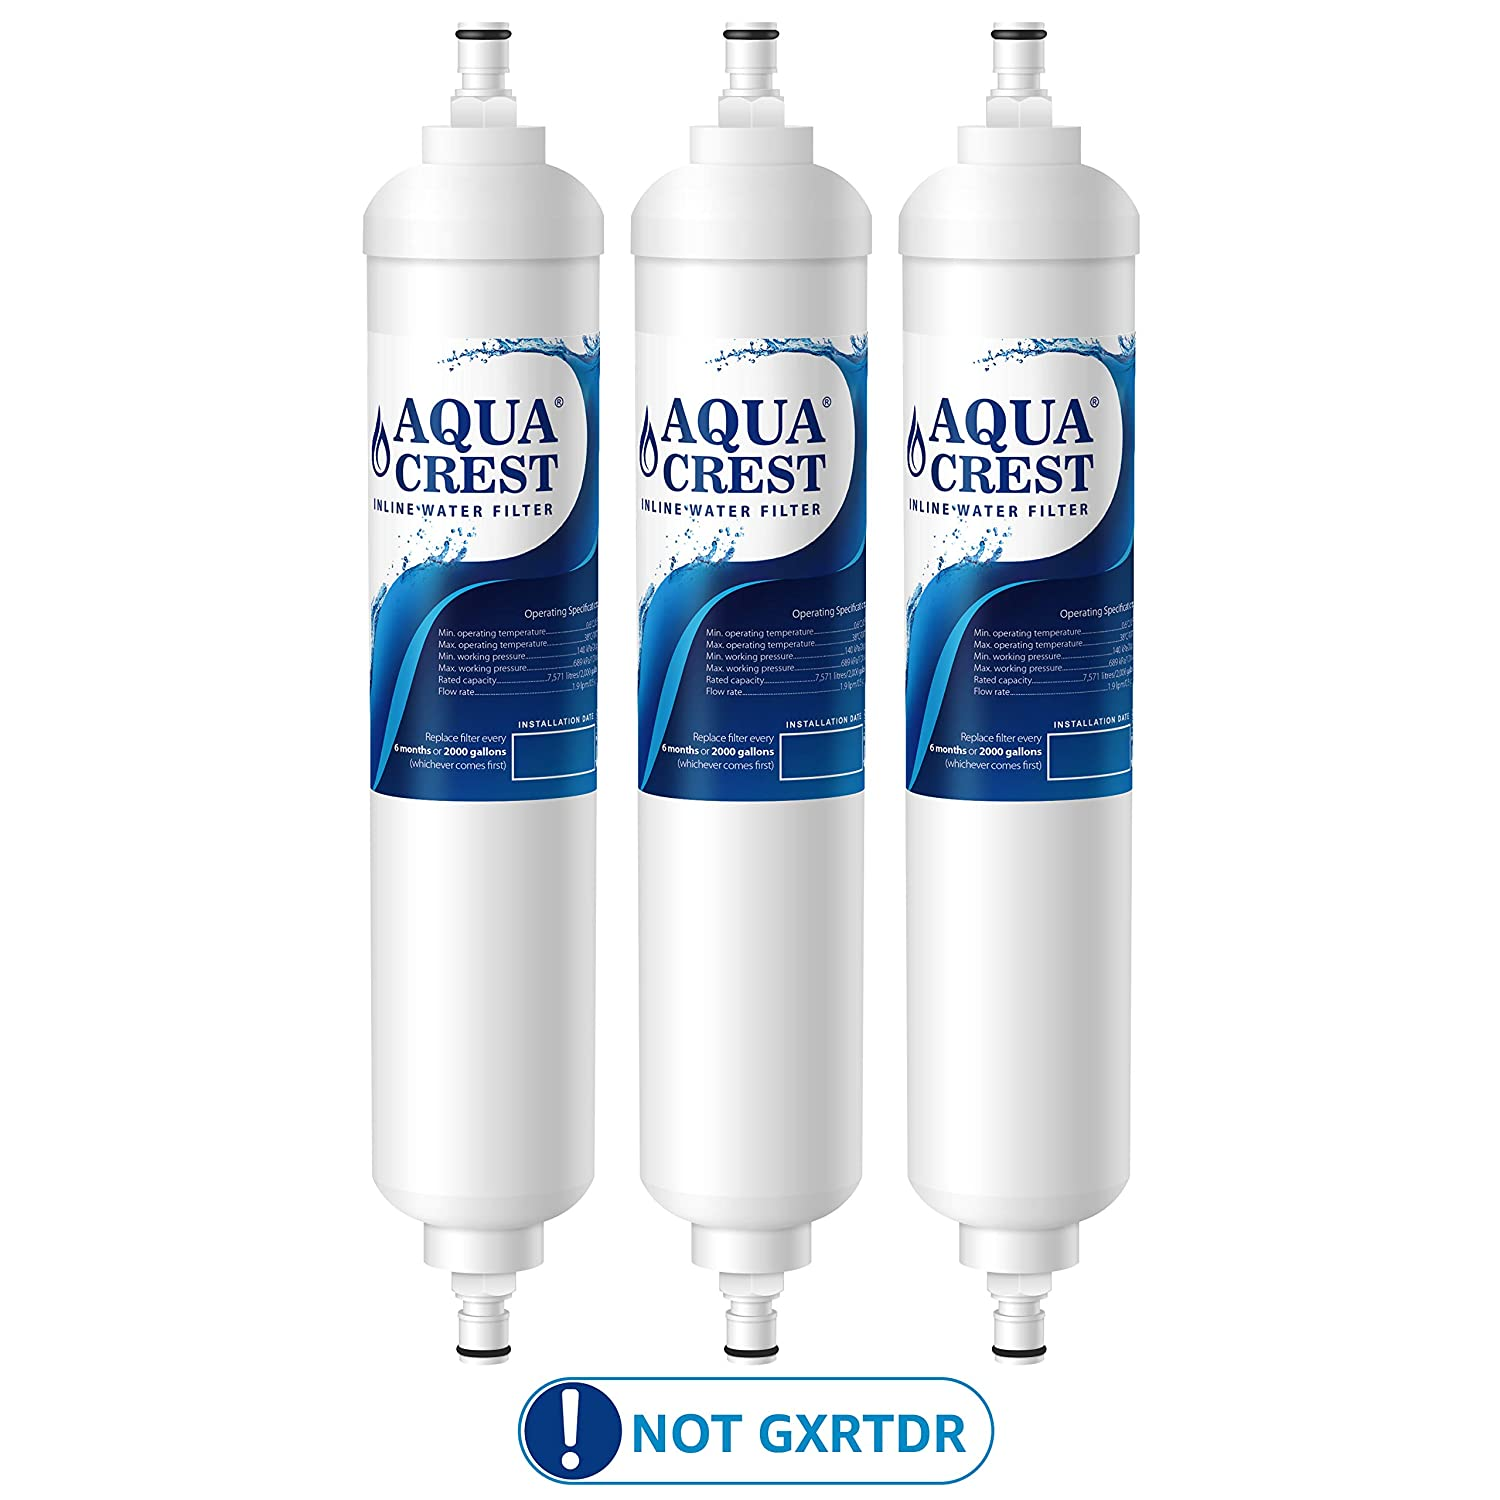 AQUA CREST GXRTQR Inline Water Filter, Carbon Block Media Ensures 99% Chlorine Reduction, Compatible with GE GXRTQR, GXRTQ System, Also Removes Heavy Metals and More (Pack of 3)